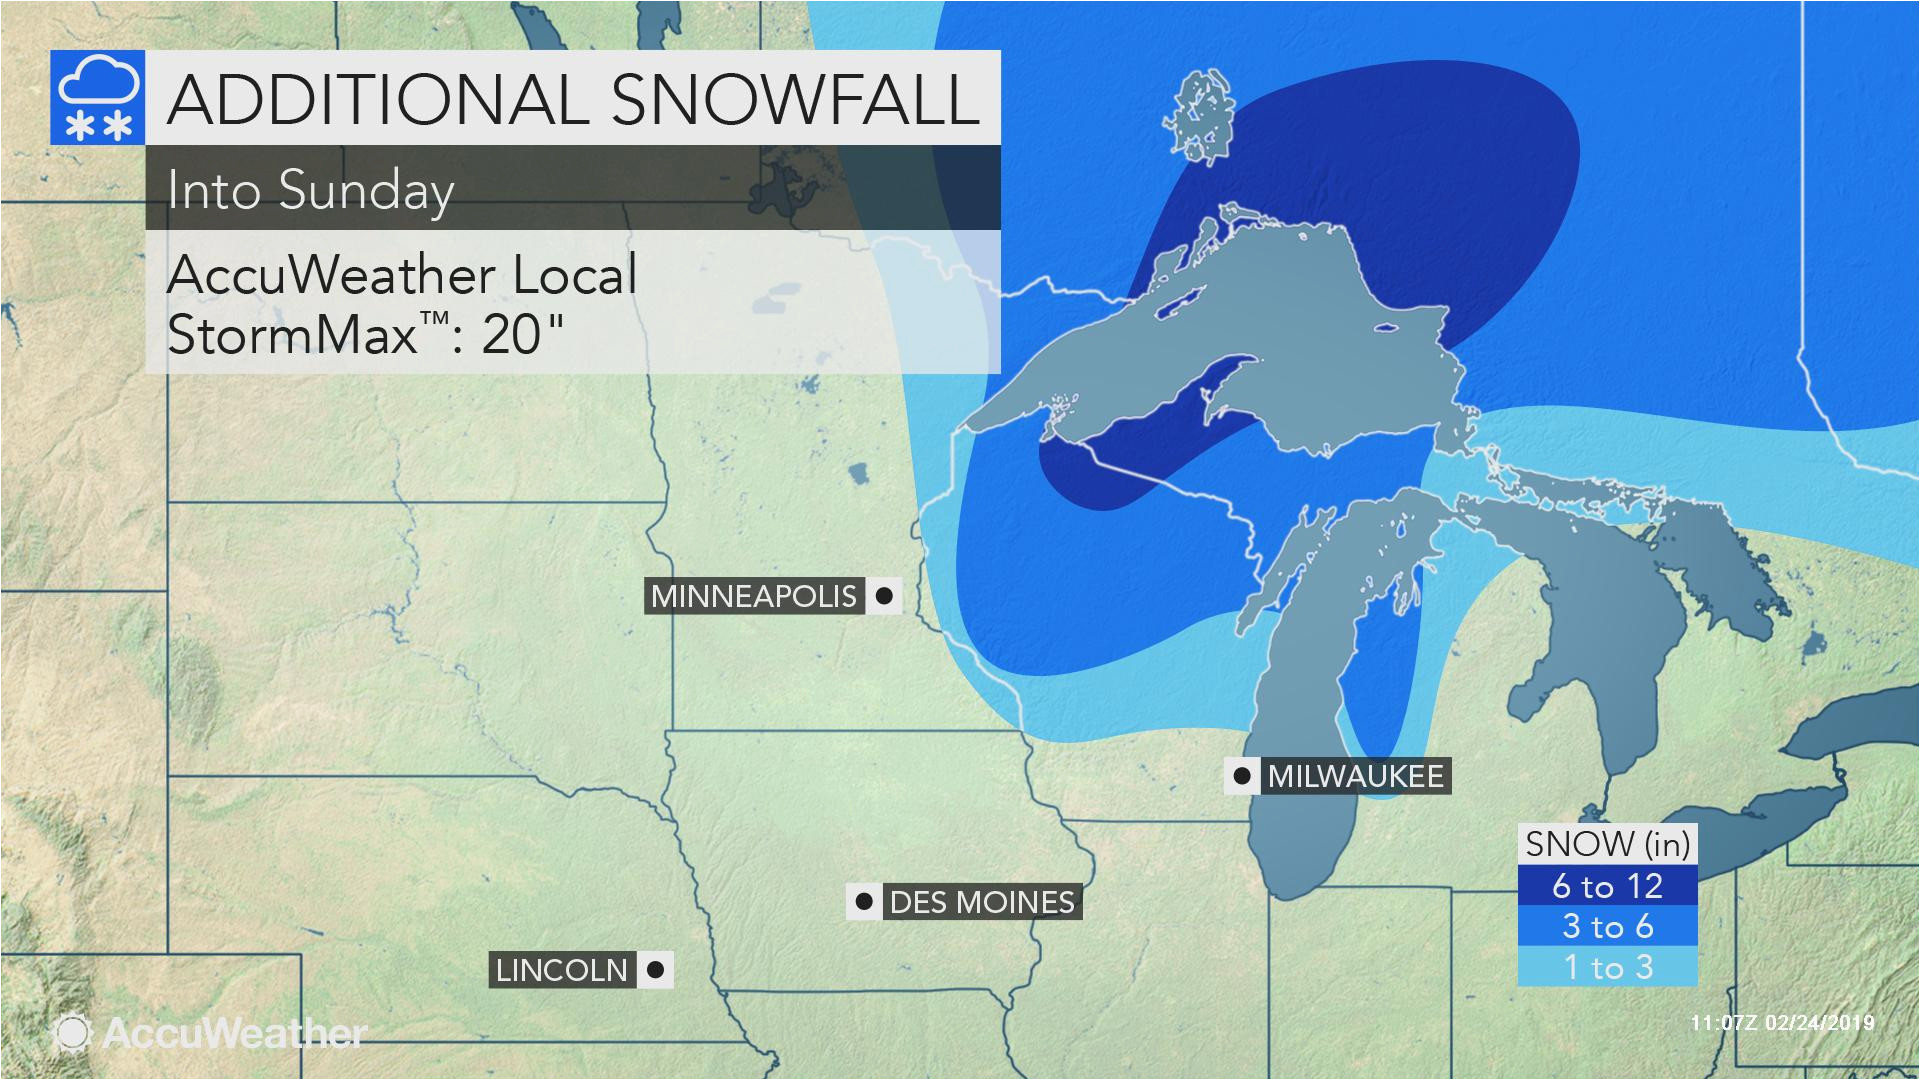 central plains blizzard to spread to upper midwest into sunday